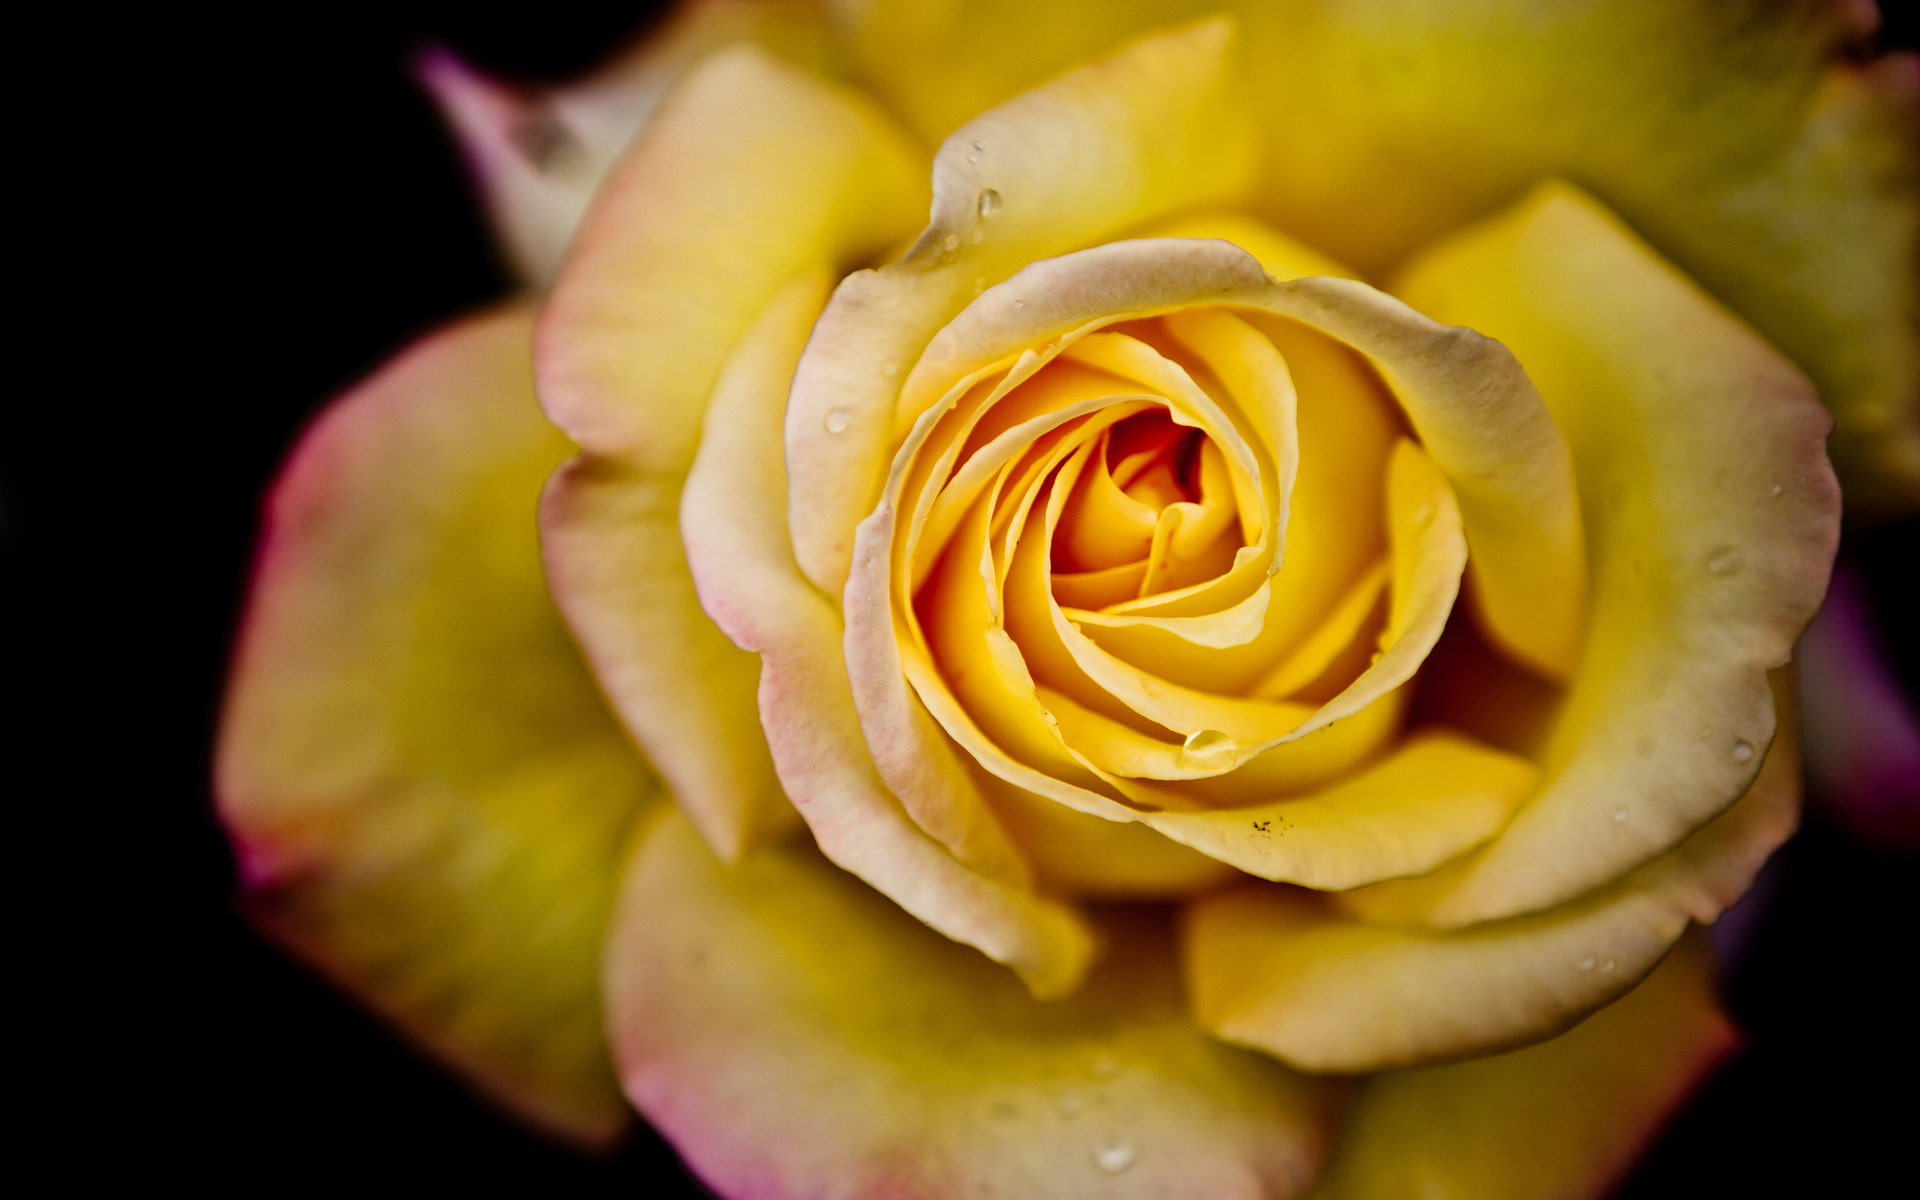 Wallpaper of yellow rose flowers